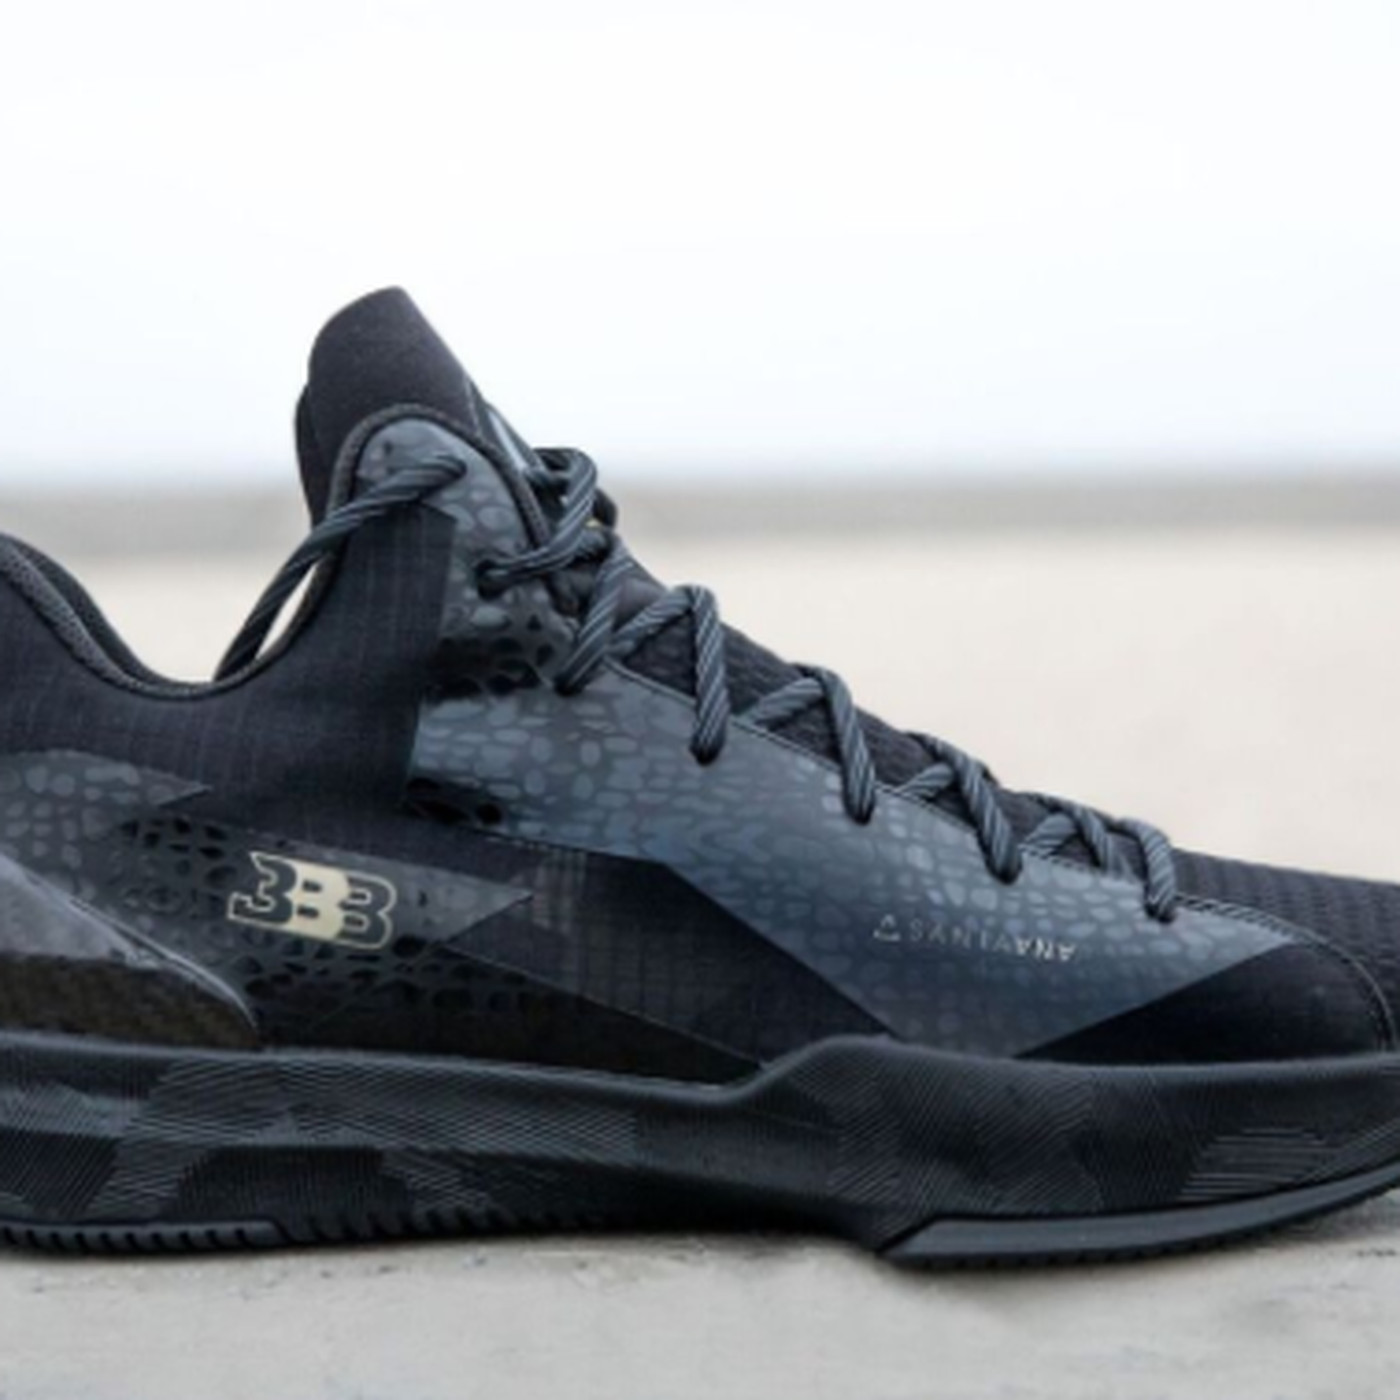 047f63ad4c45 Big Baller Brand totally redesigned Lonzo Ball s shoe before it shipped -  SBNation.com